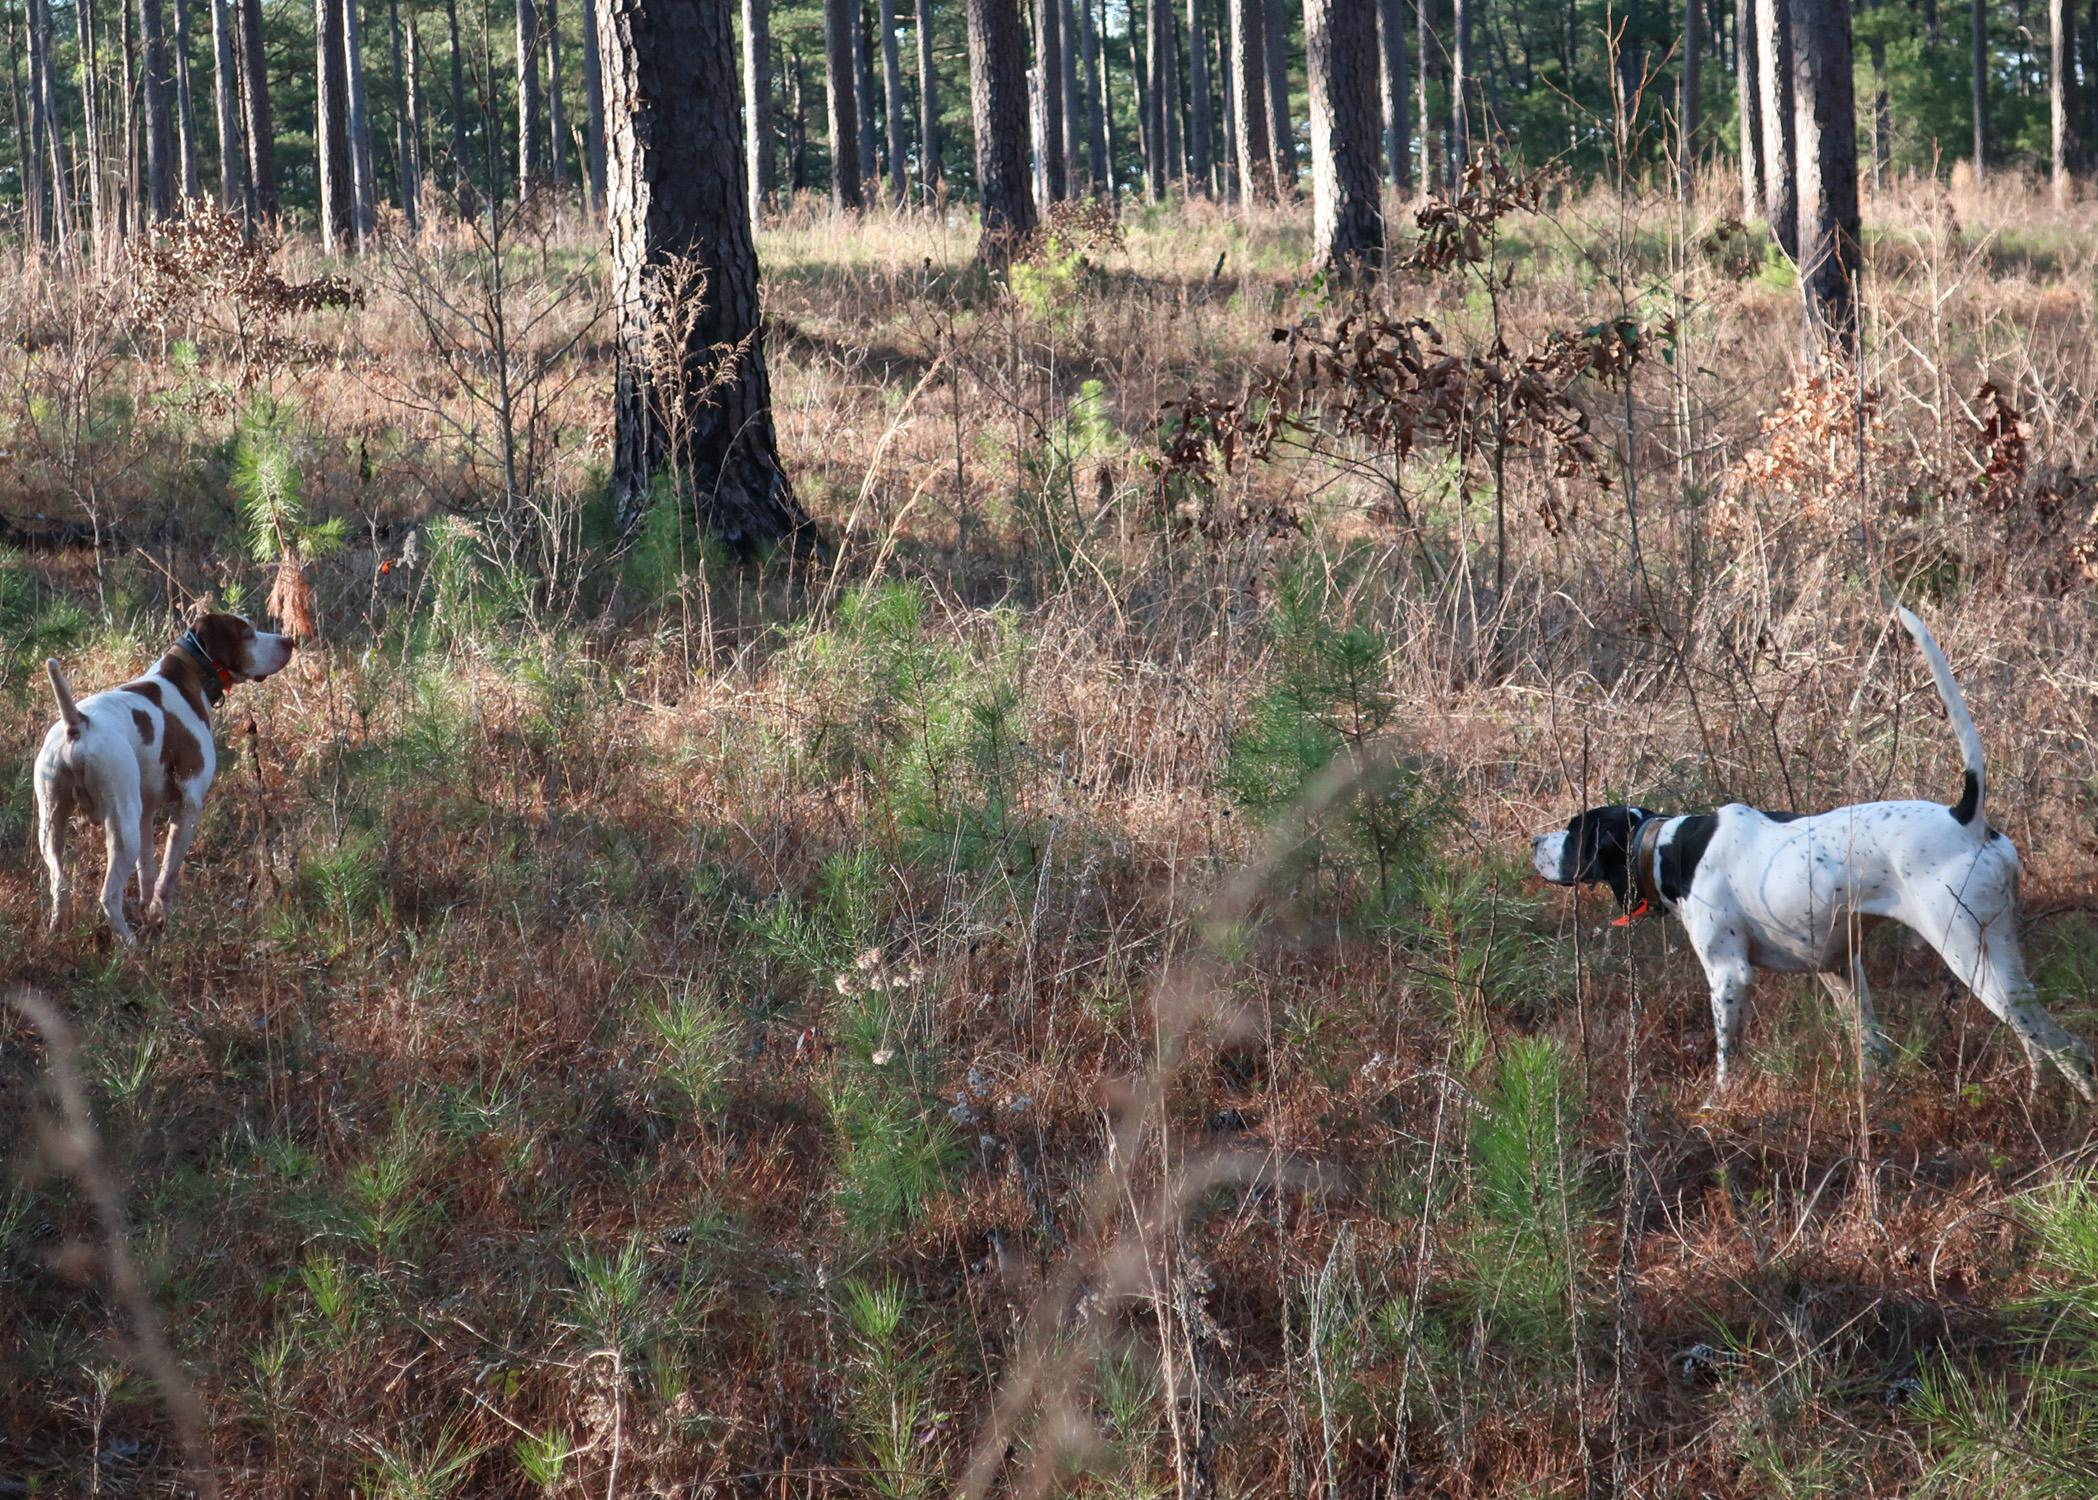 Two English Pointer hunting dogs tracking a scent in a forest.